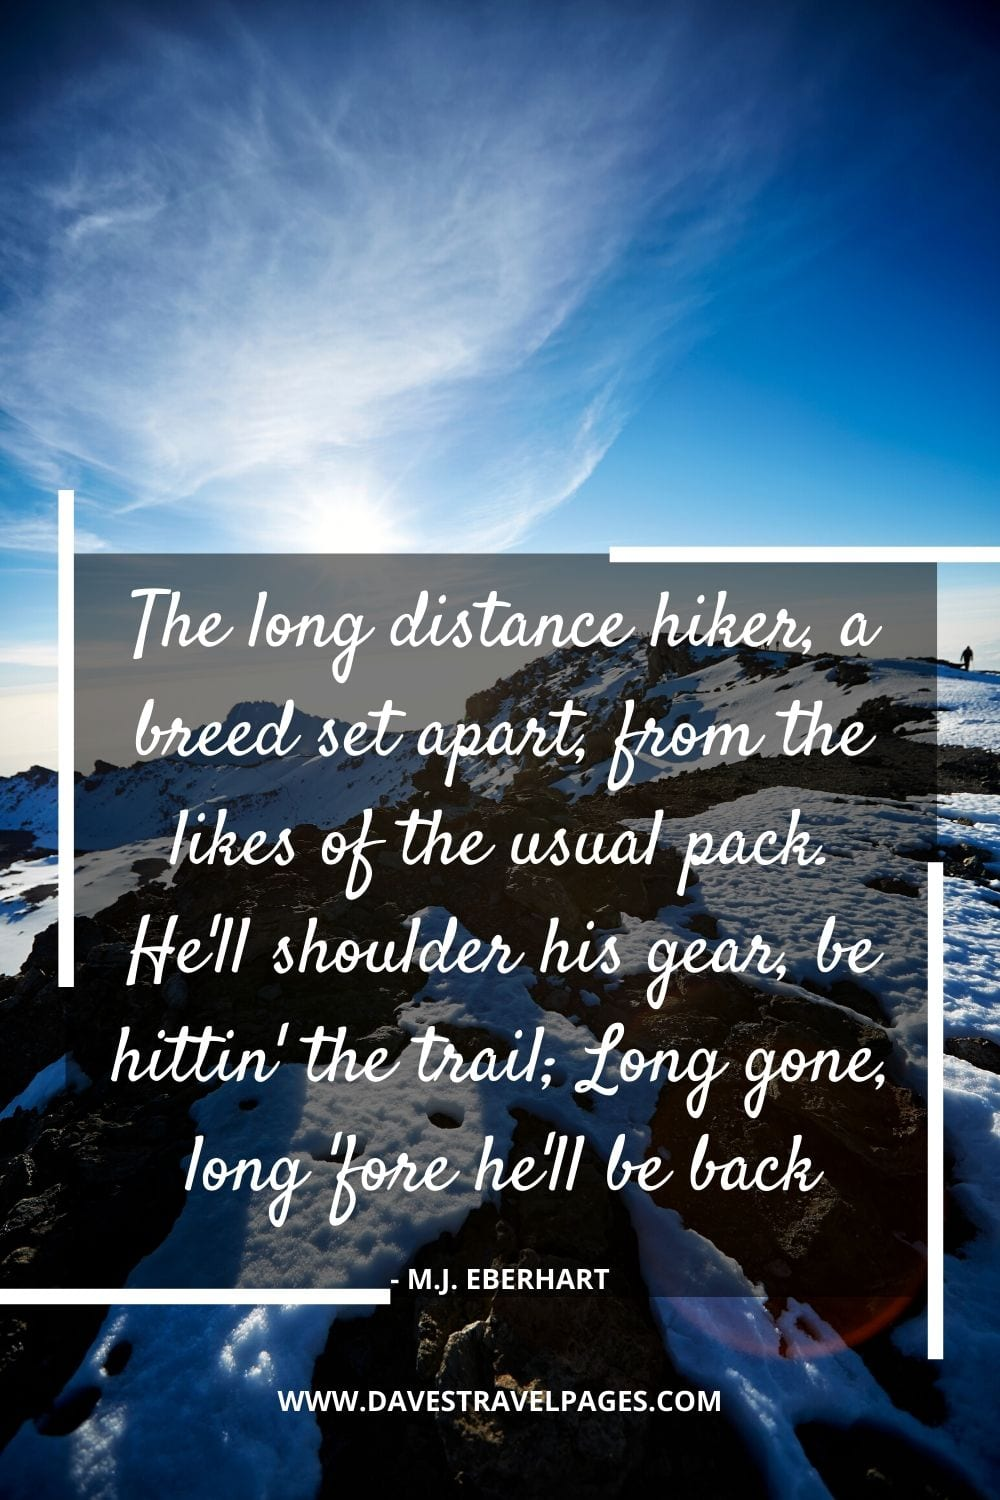 The long distance hiker, a breed set apart, from the likes of the usual pack. He'll shoulder his gear, be hittin' the trail; Long gone, long 'fore he'll be back - M.J. Eberhart